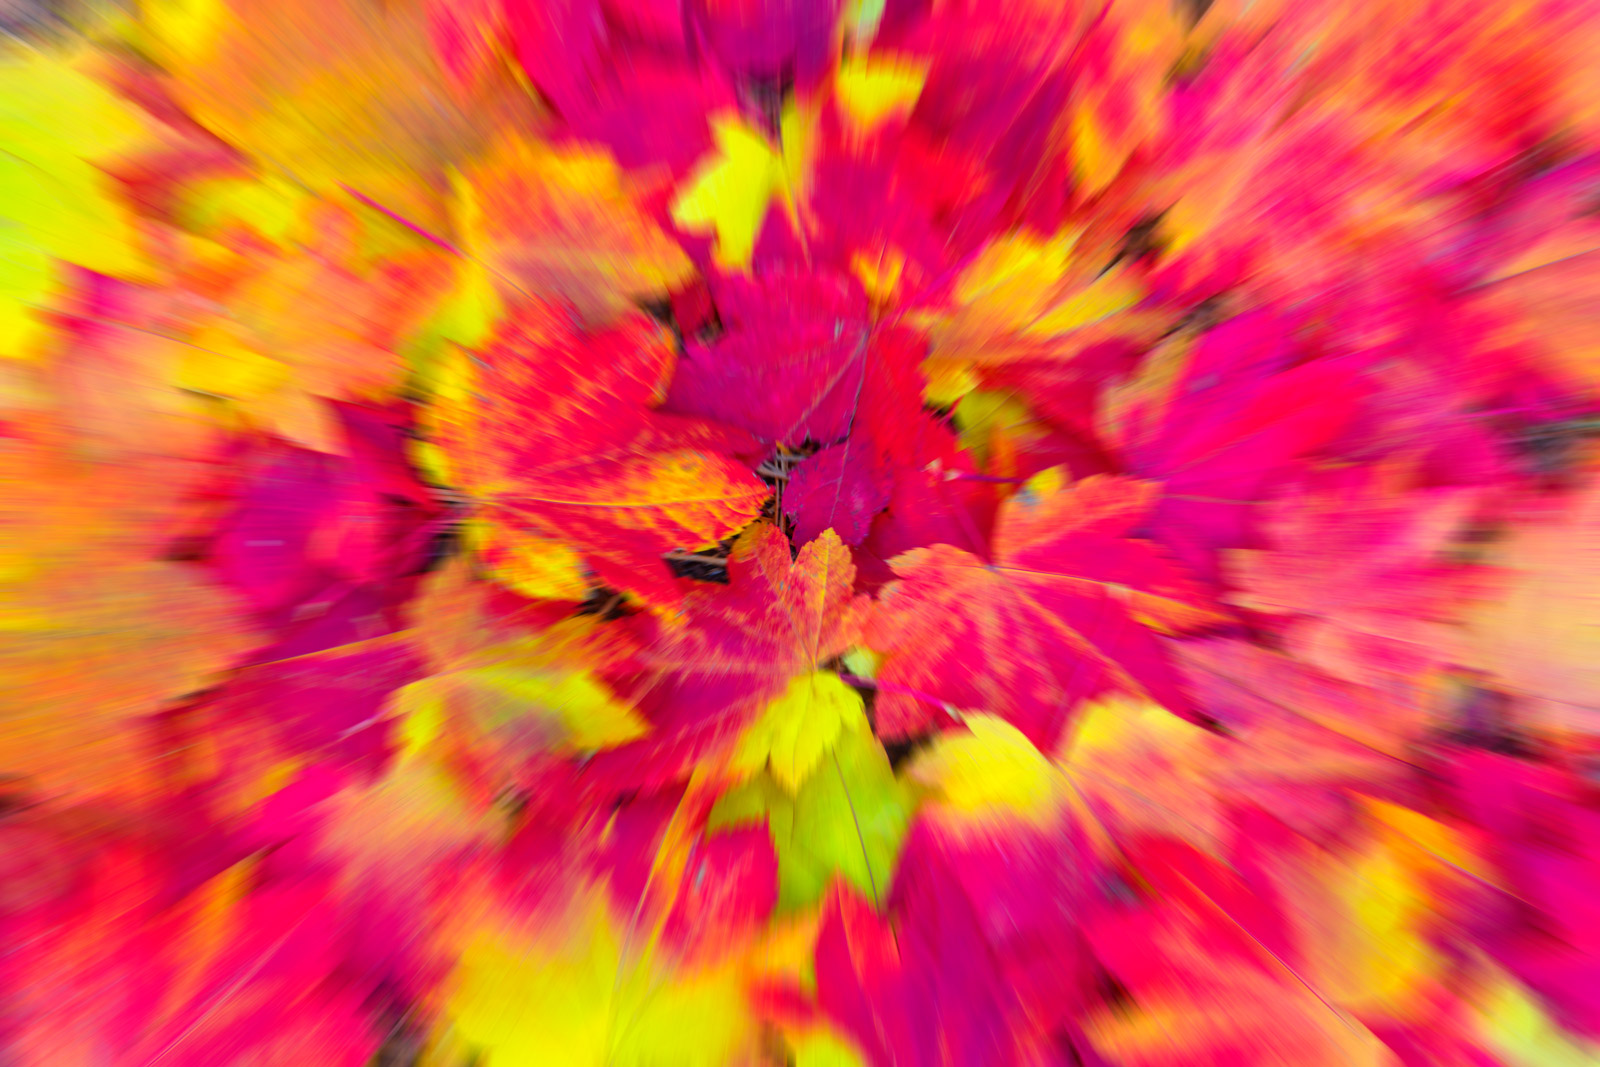 A Limited Edition, Fine Art abstract photograph of fall leaves appearing to explode out in all directions. Available as a Fine...